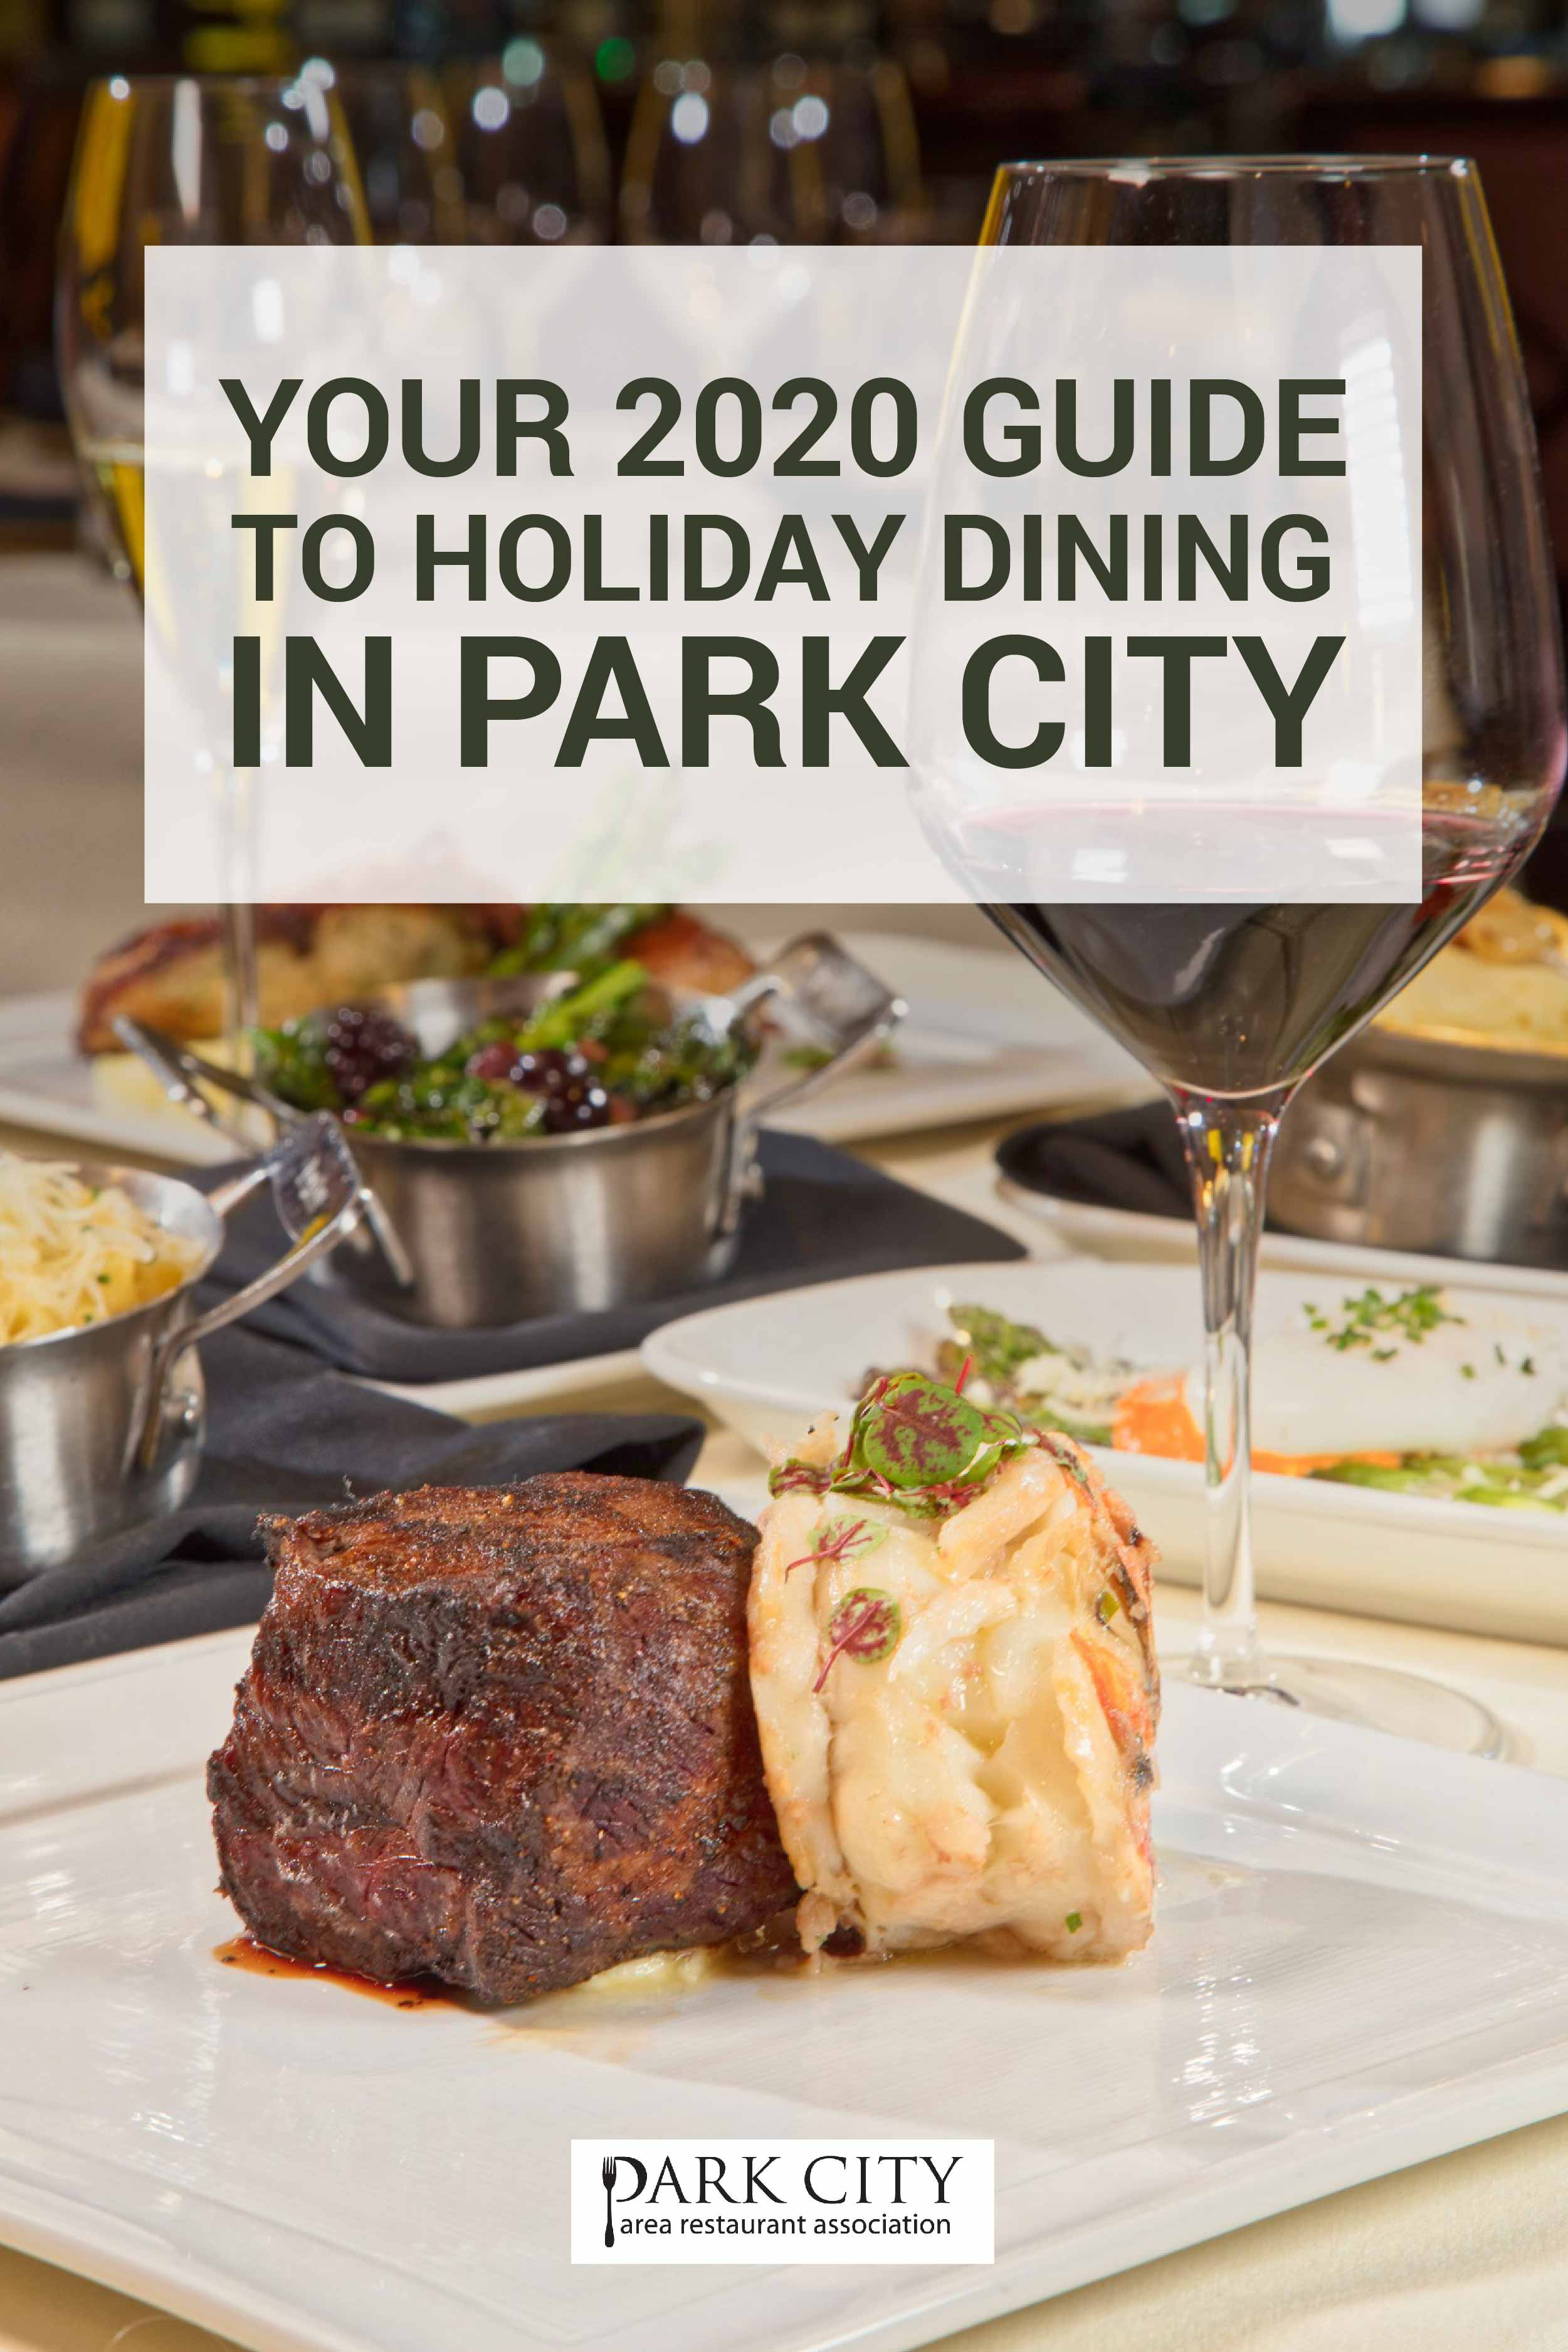 Your 2020 guide to holiday dining in park City.